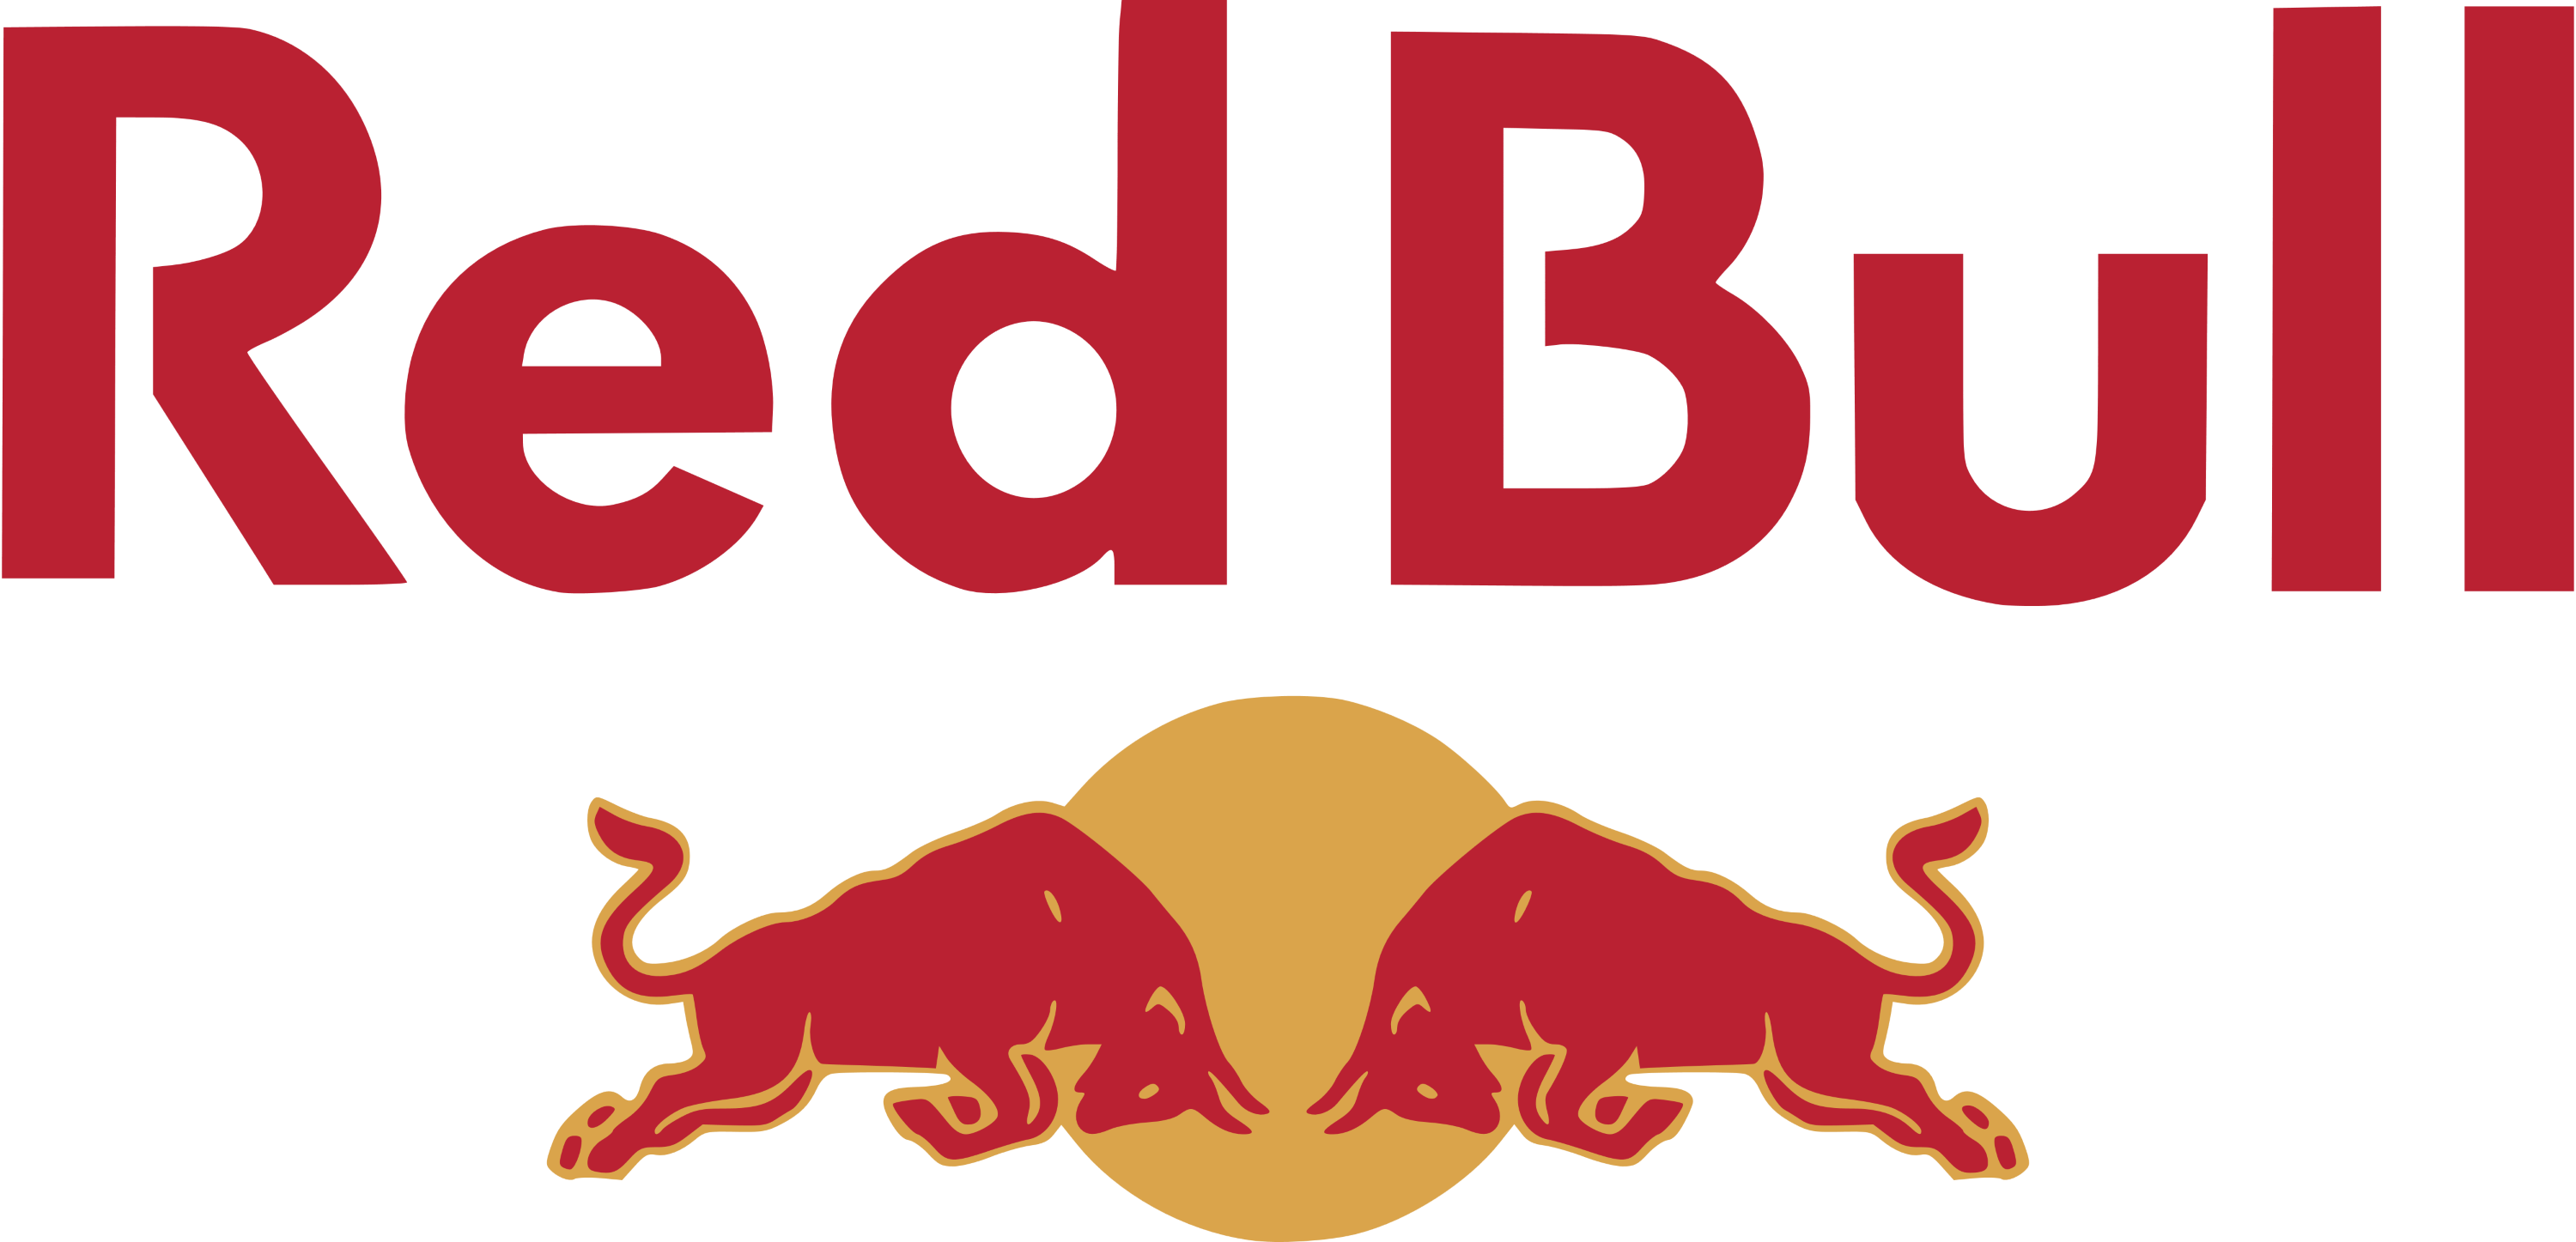 RedBull Product Photos